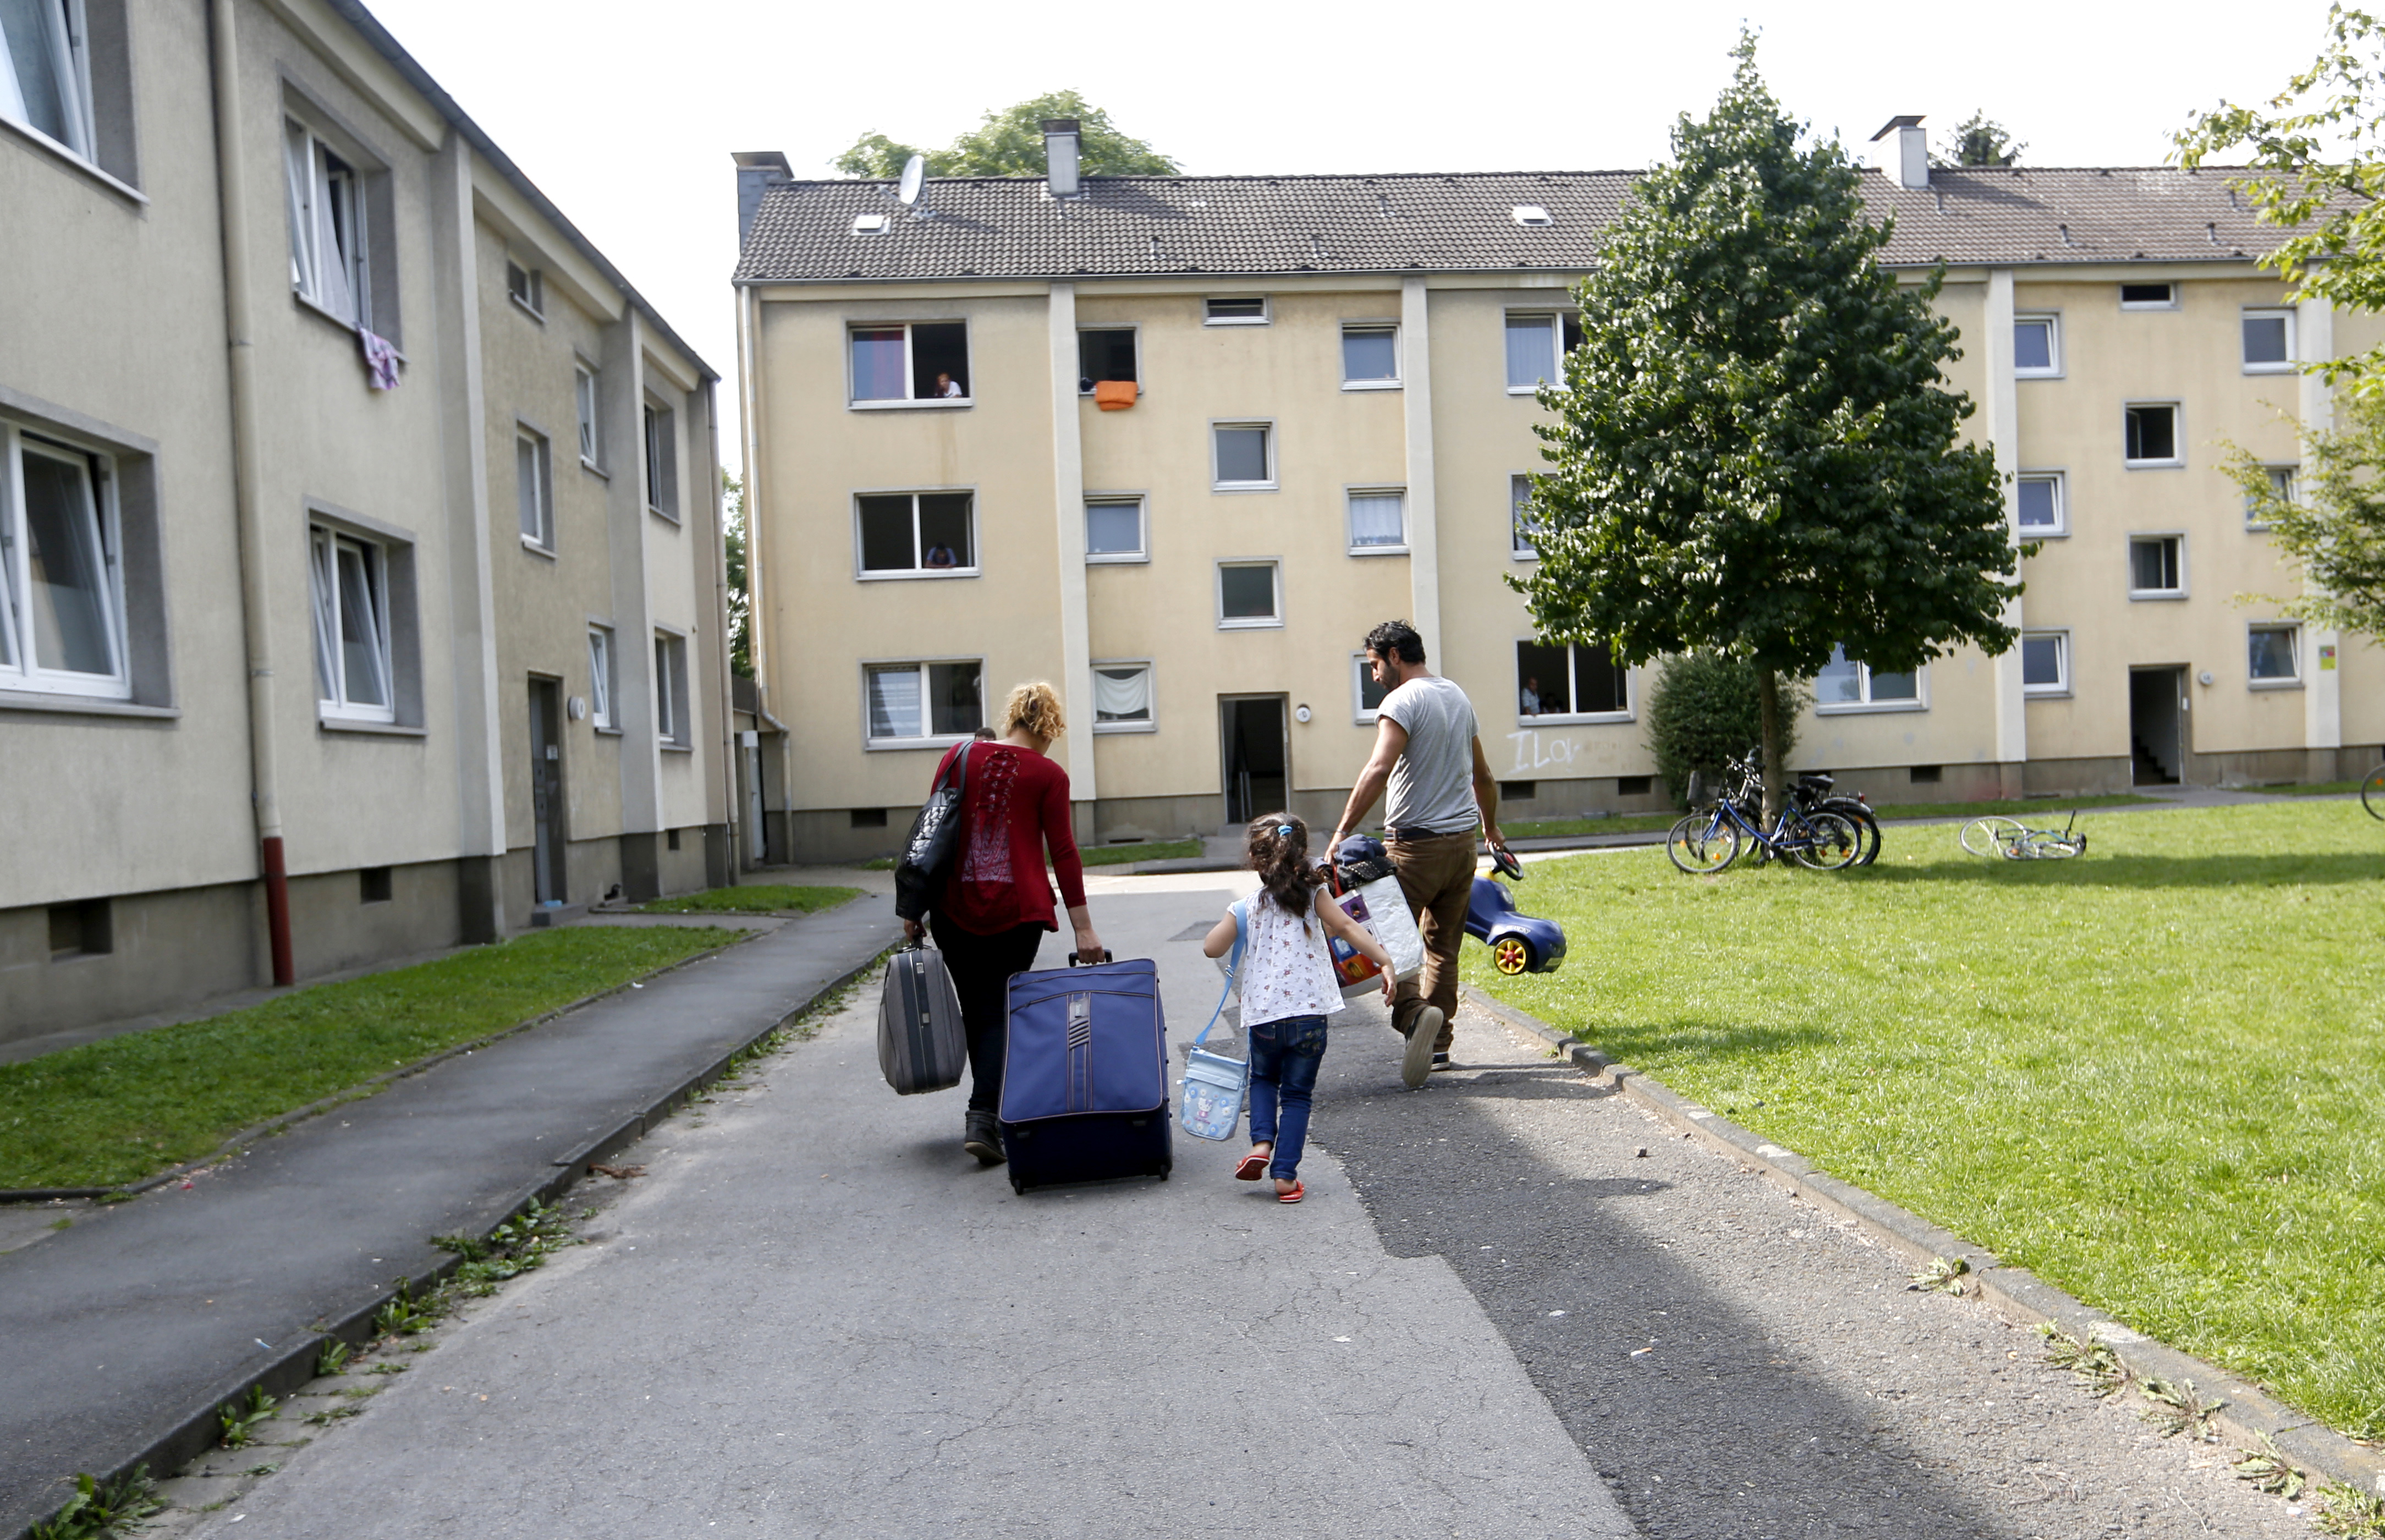 4-year-old-refugee Lilas from Syria and her parents walk to their refugee home in Muelheim an der Ruhr, Germany, after receiving articles for daily use prepared by donors at a distribution center, Aug, 20, 2015.